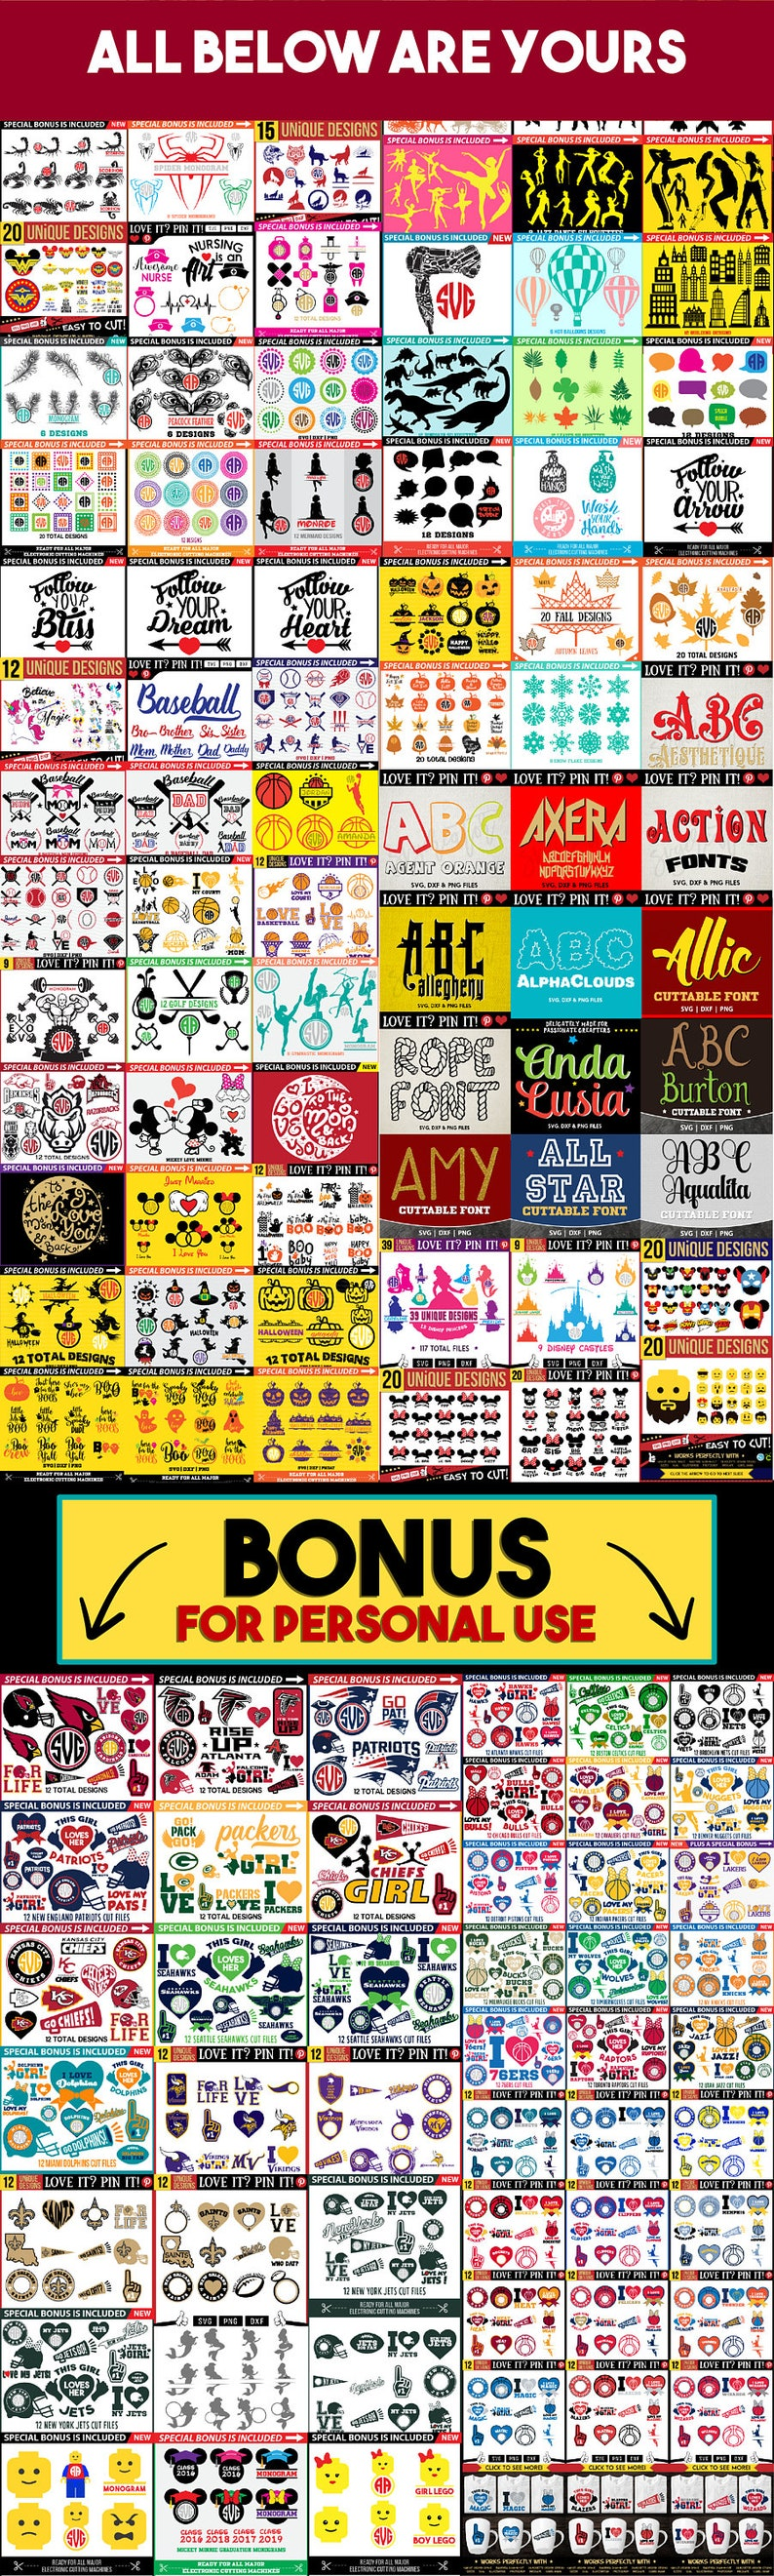 ALL IN SHOP Svg Files  Unlimited Commercial Use  Cricut Silhouette Sublimation Transfer  Easy Instant Download Disney Mermaid Unicorn /& More